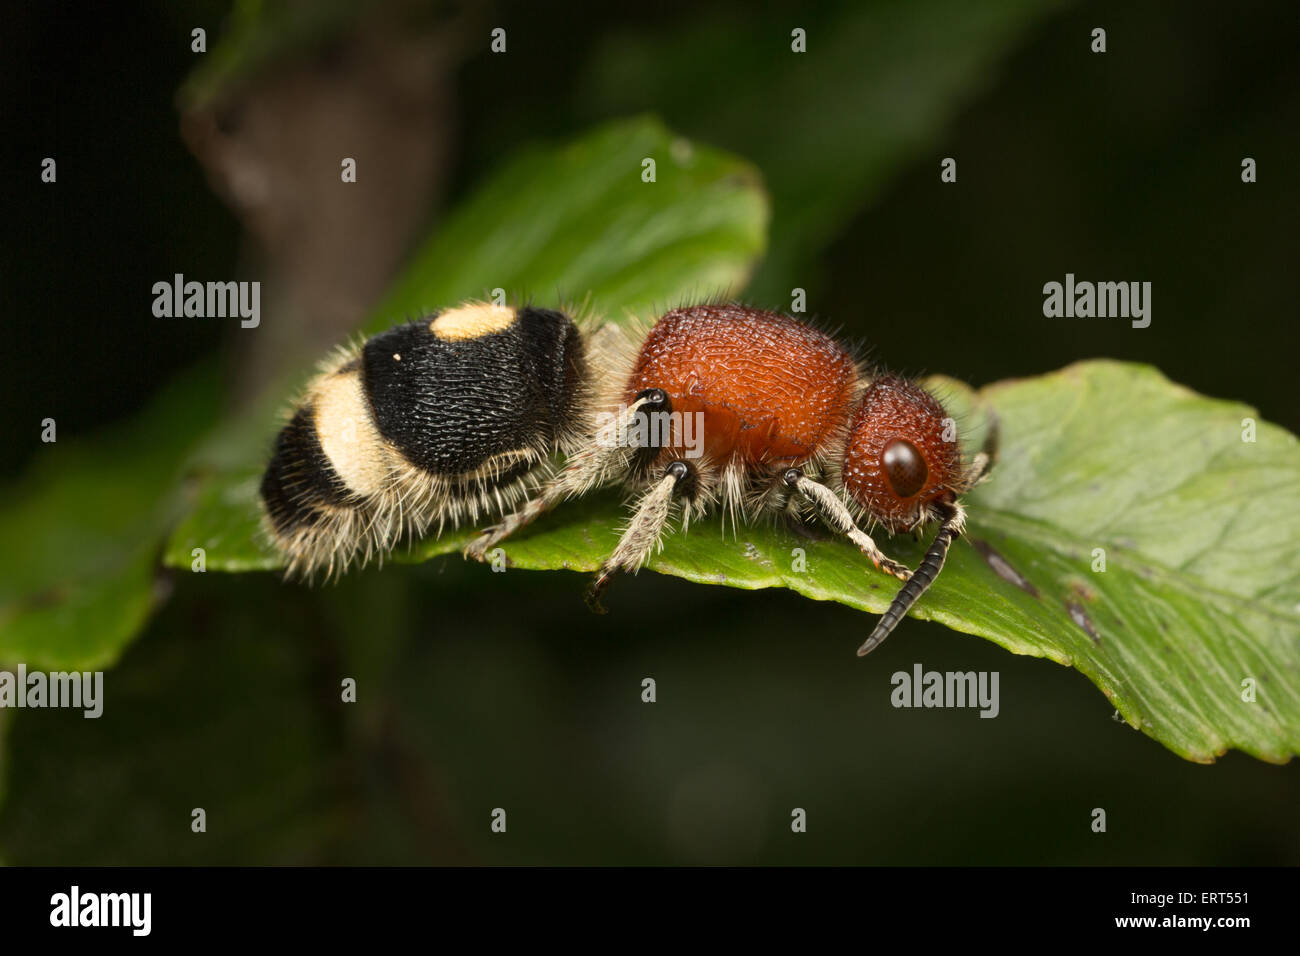 The Mutillidae are a family of more than 3,000 species of wasps whose wingless females resemble large, hairy ants. - Stock Image